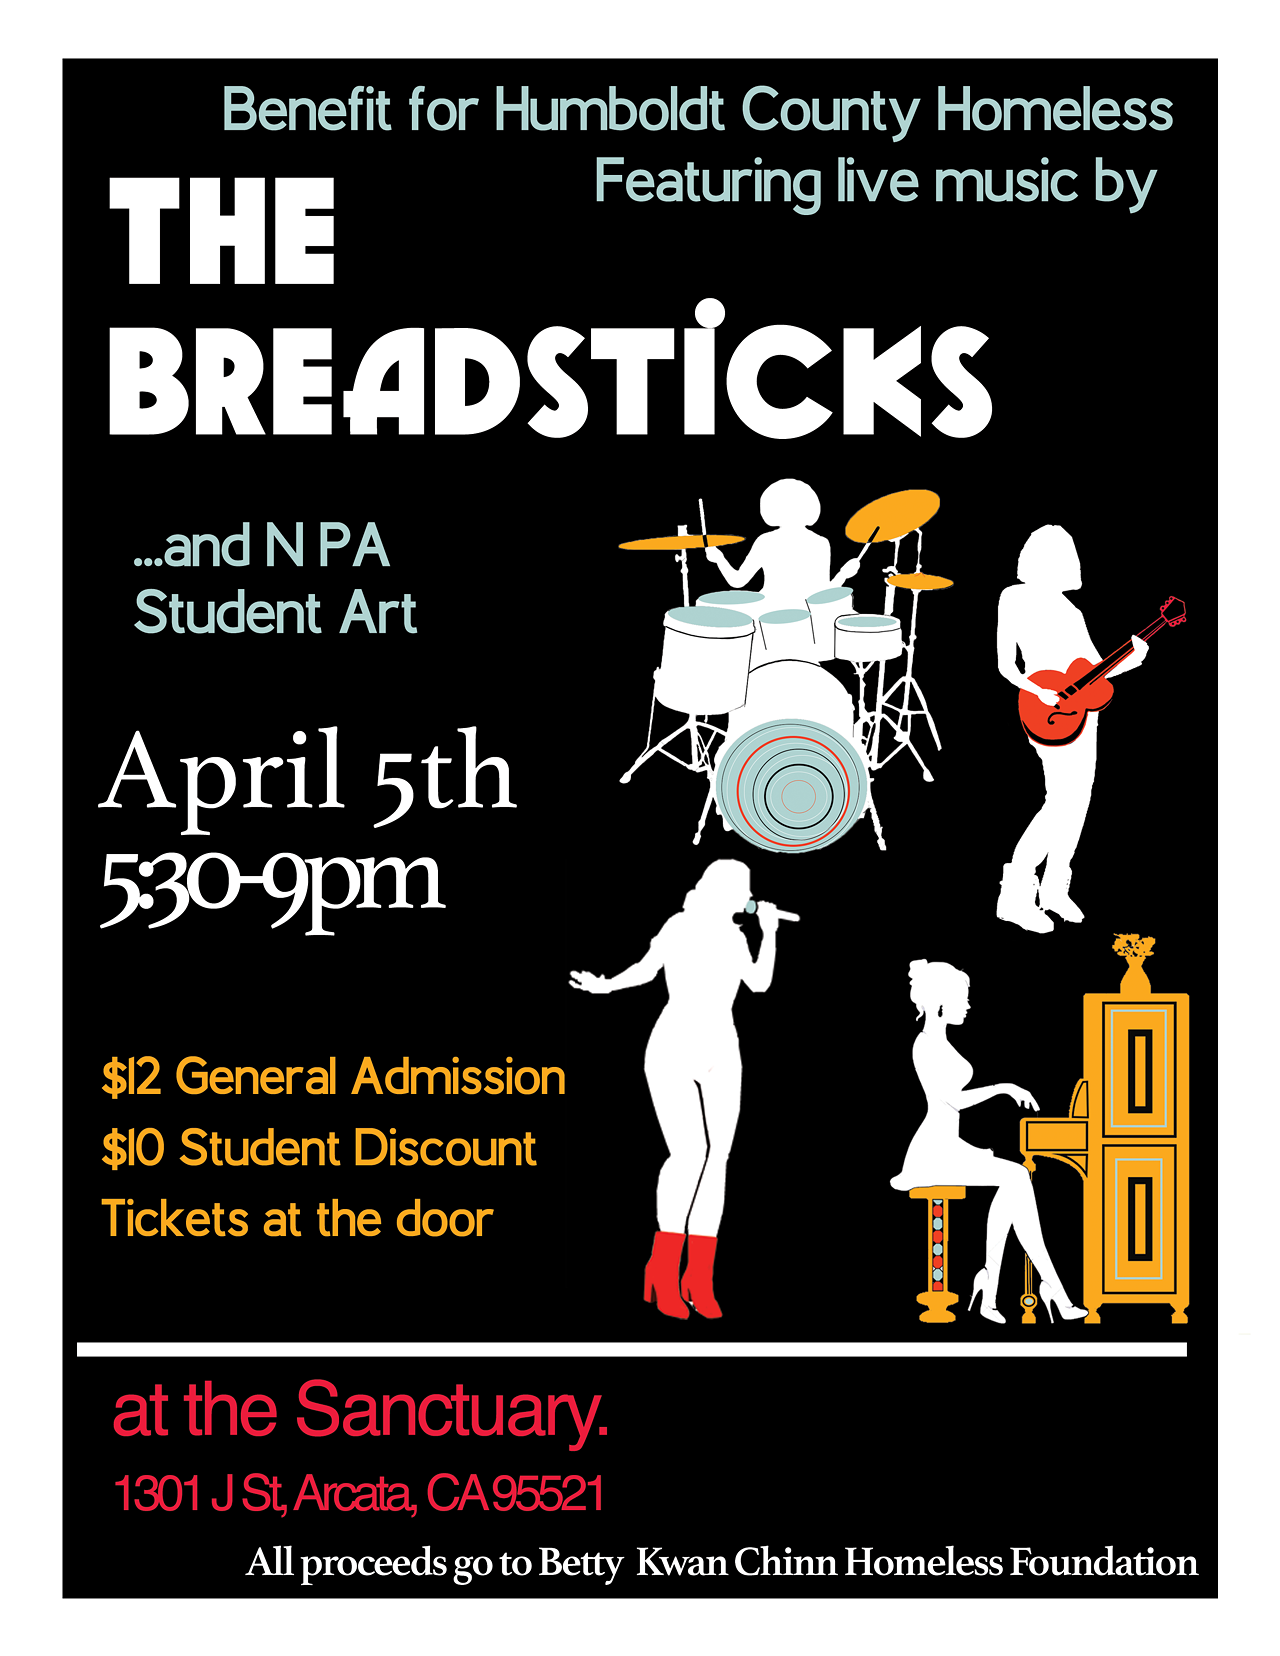 A Benefit for Humboldt County Homeless Featuring the Breadsticks